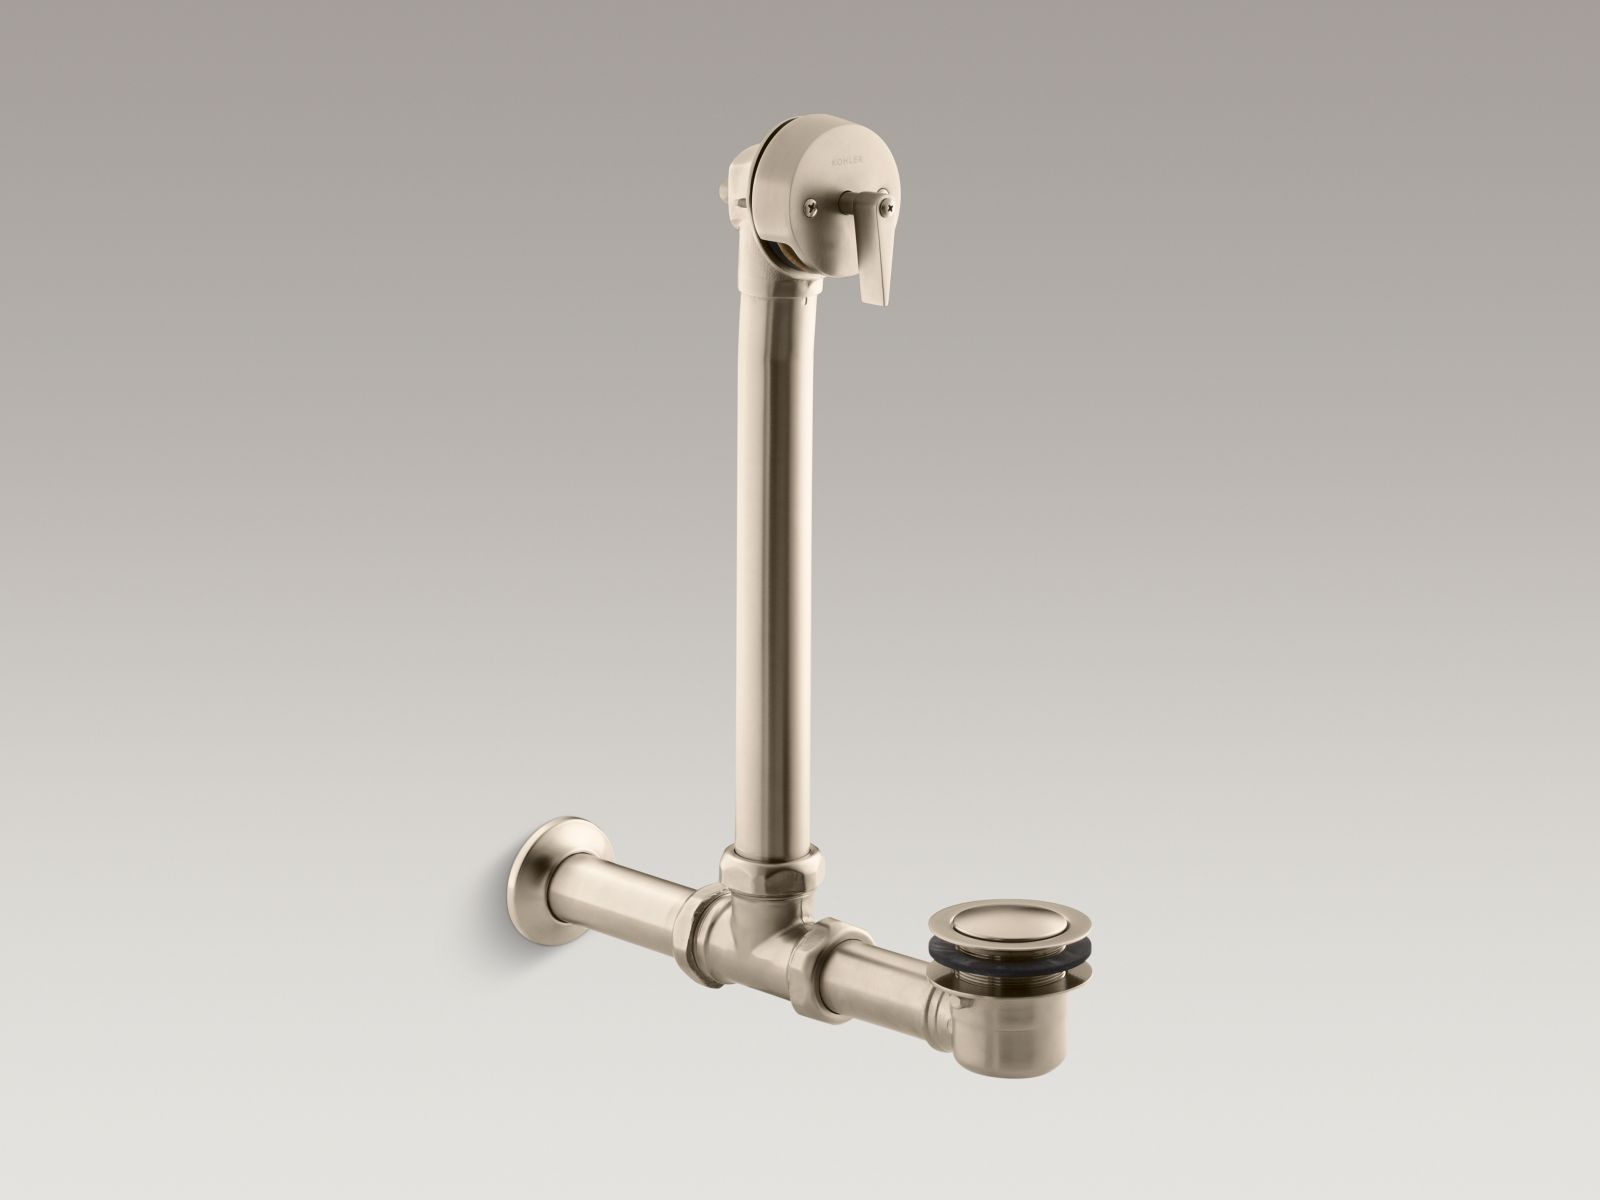 Kohler K-7104-BV Iron Works Exposed Bath Drain for Above-The-Floor Installation Vibrant Brushed Bronze